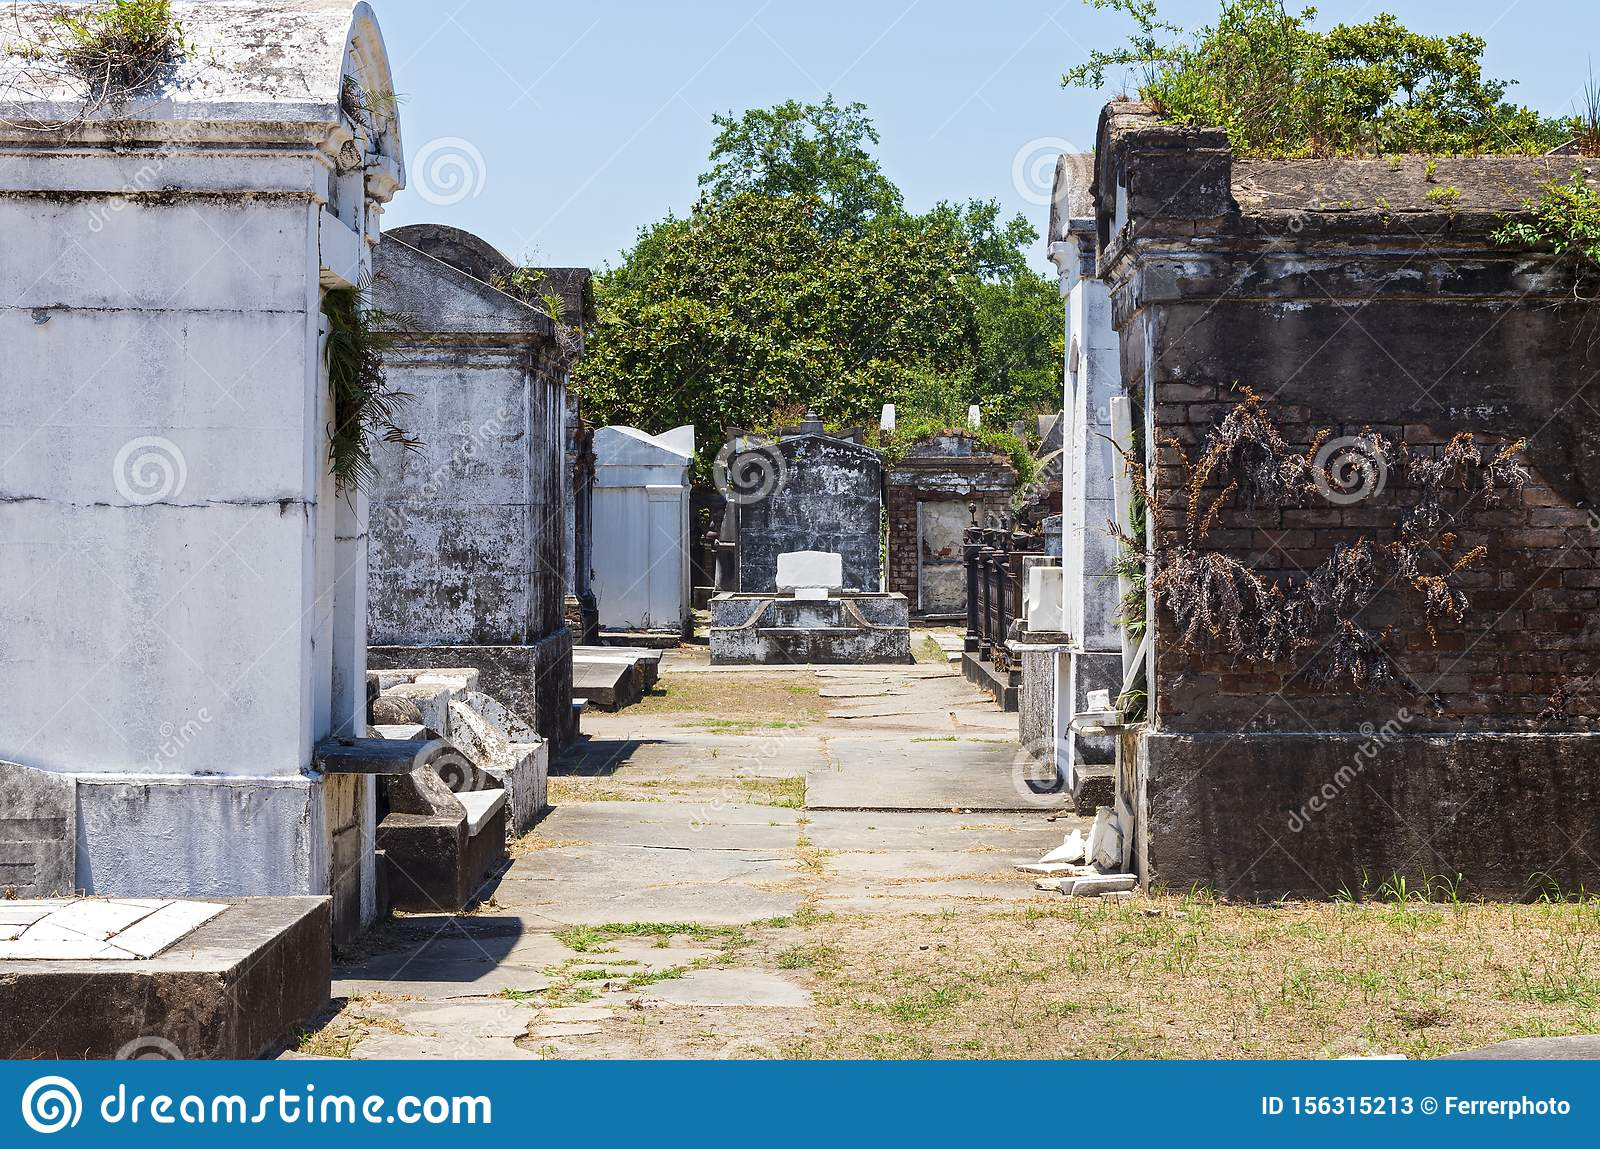 Mausoleums and Tombs at Historic Cemetery in New Orleans